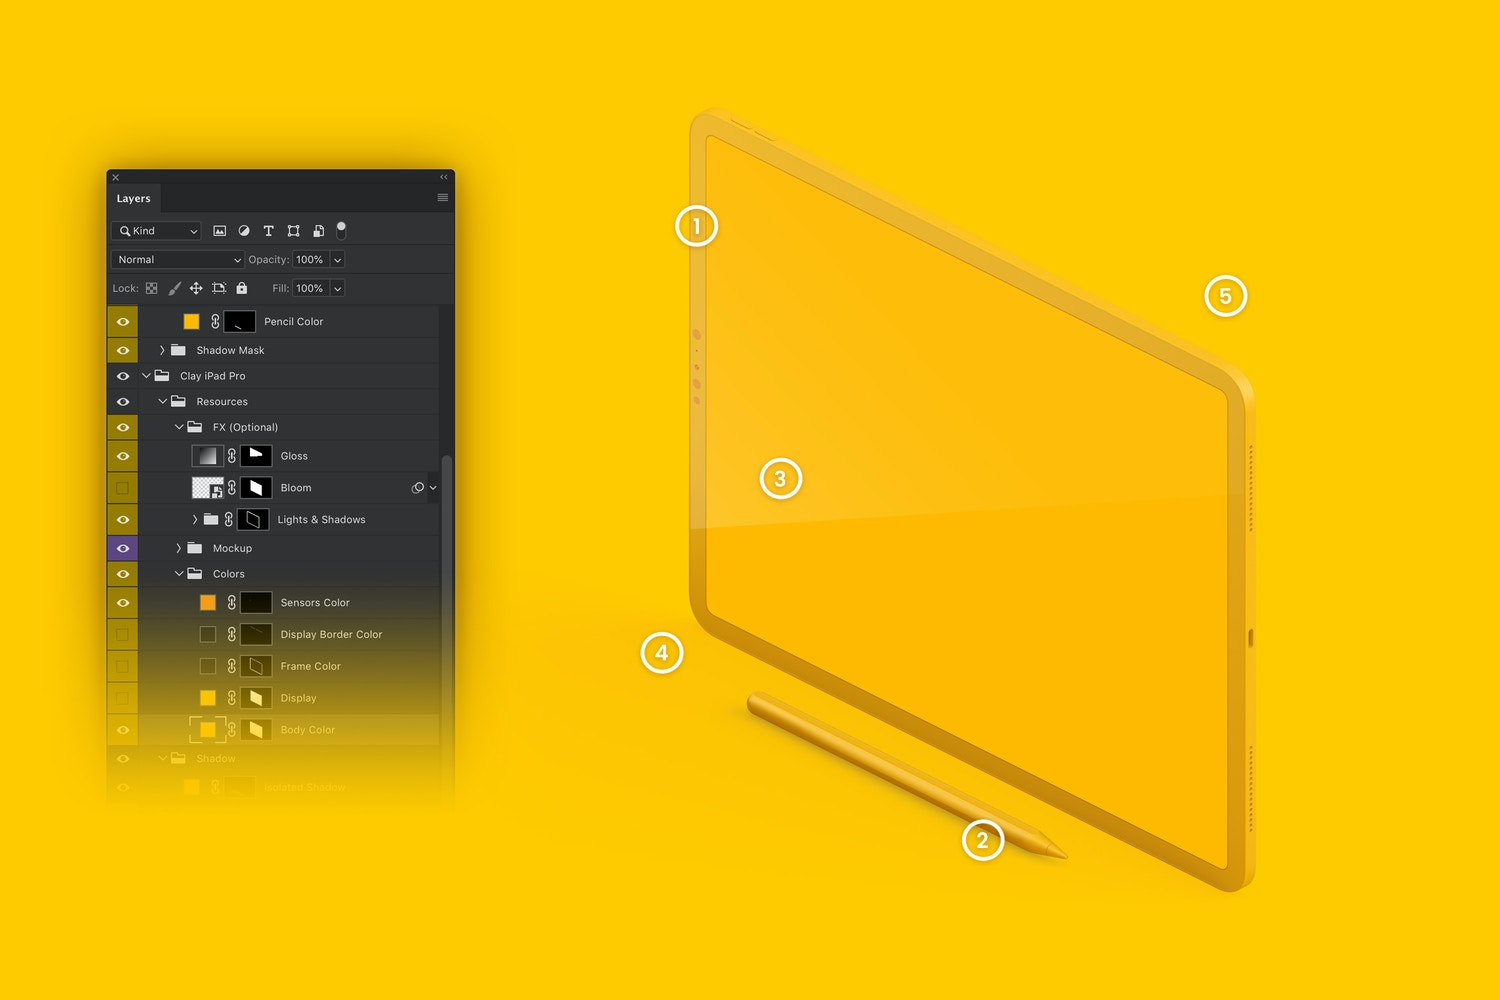 Clay iPad Pro 12.9 Mockup, Isometric Left View 03 (6) by Original Mockups on Original Mockups